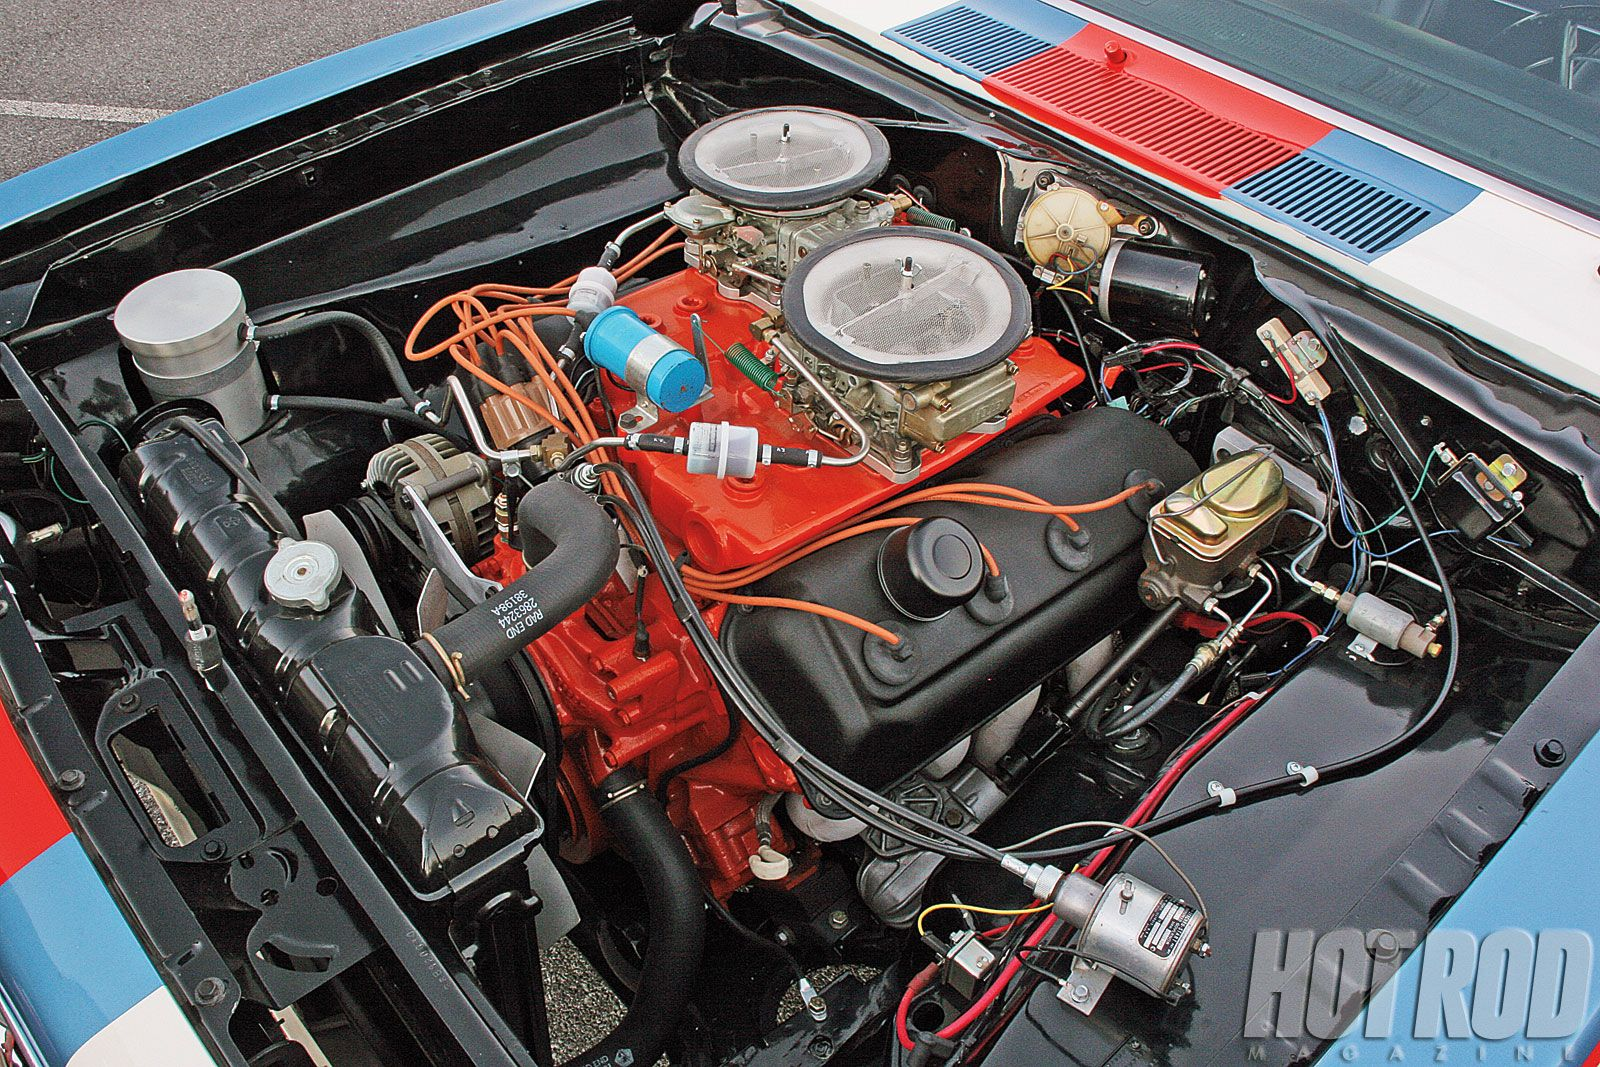 photos of super cuda 68 barracuda drag car | Plymouth Hemi Super ...